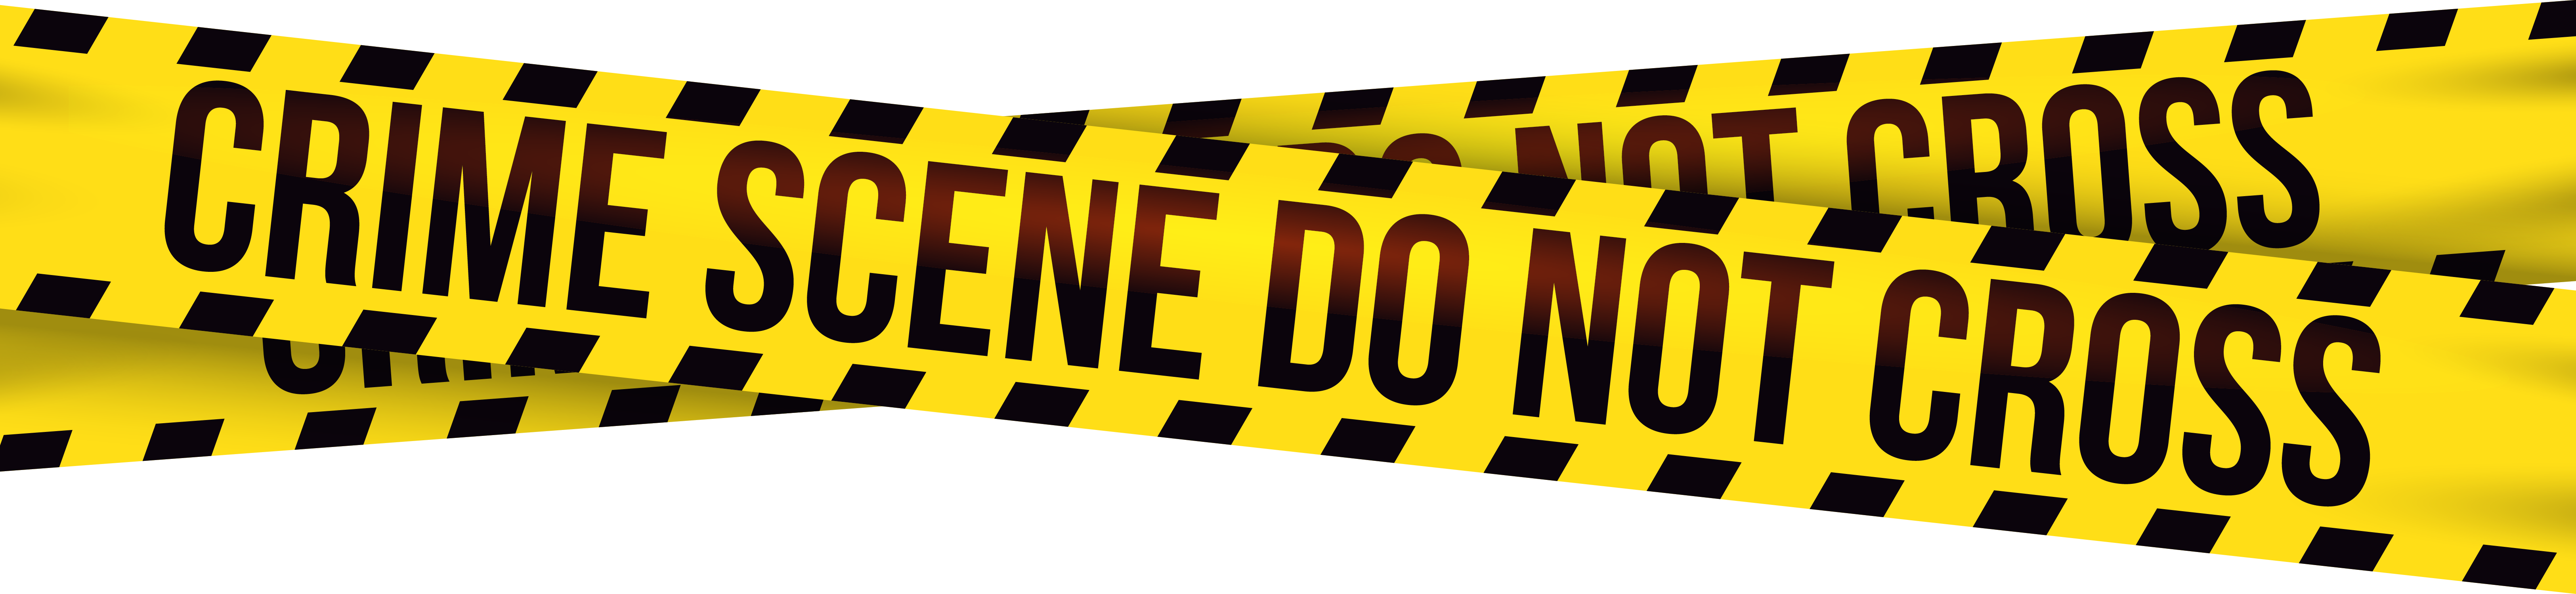 Police tape PNG images free download.